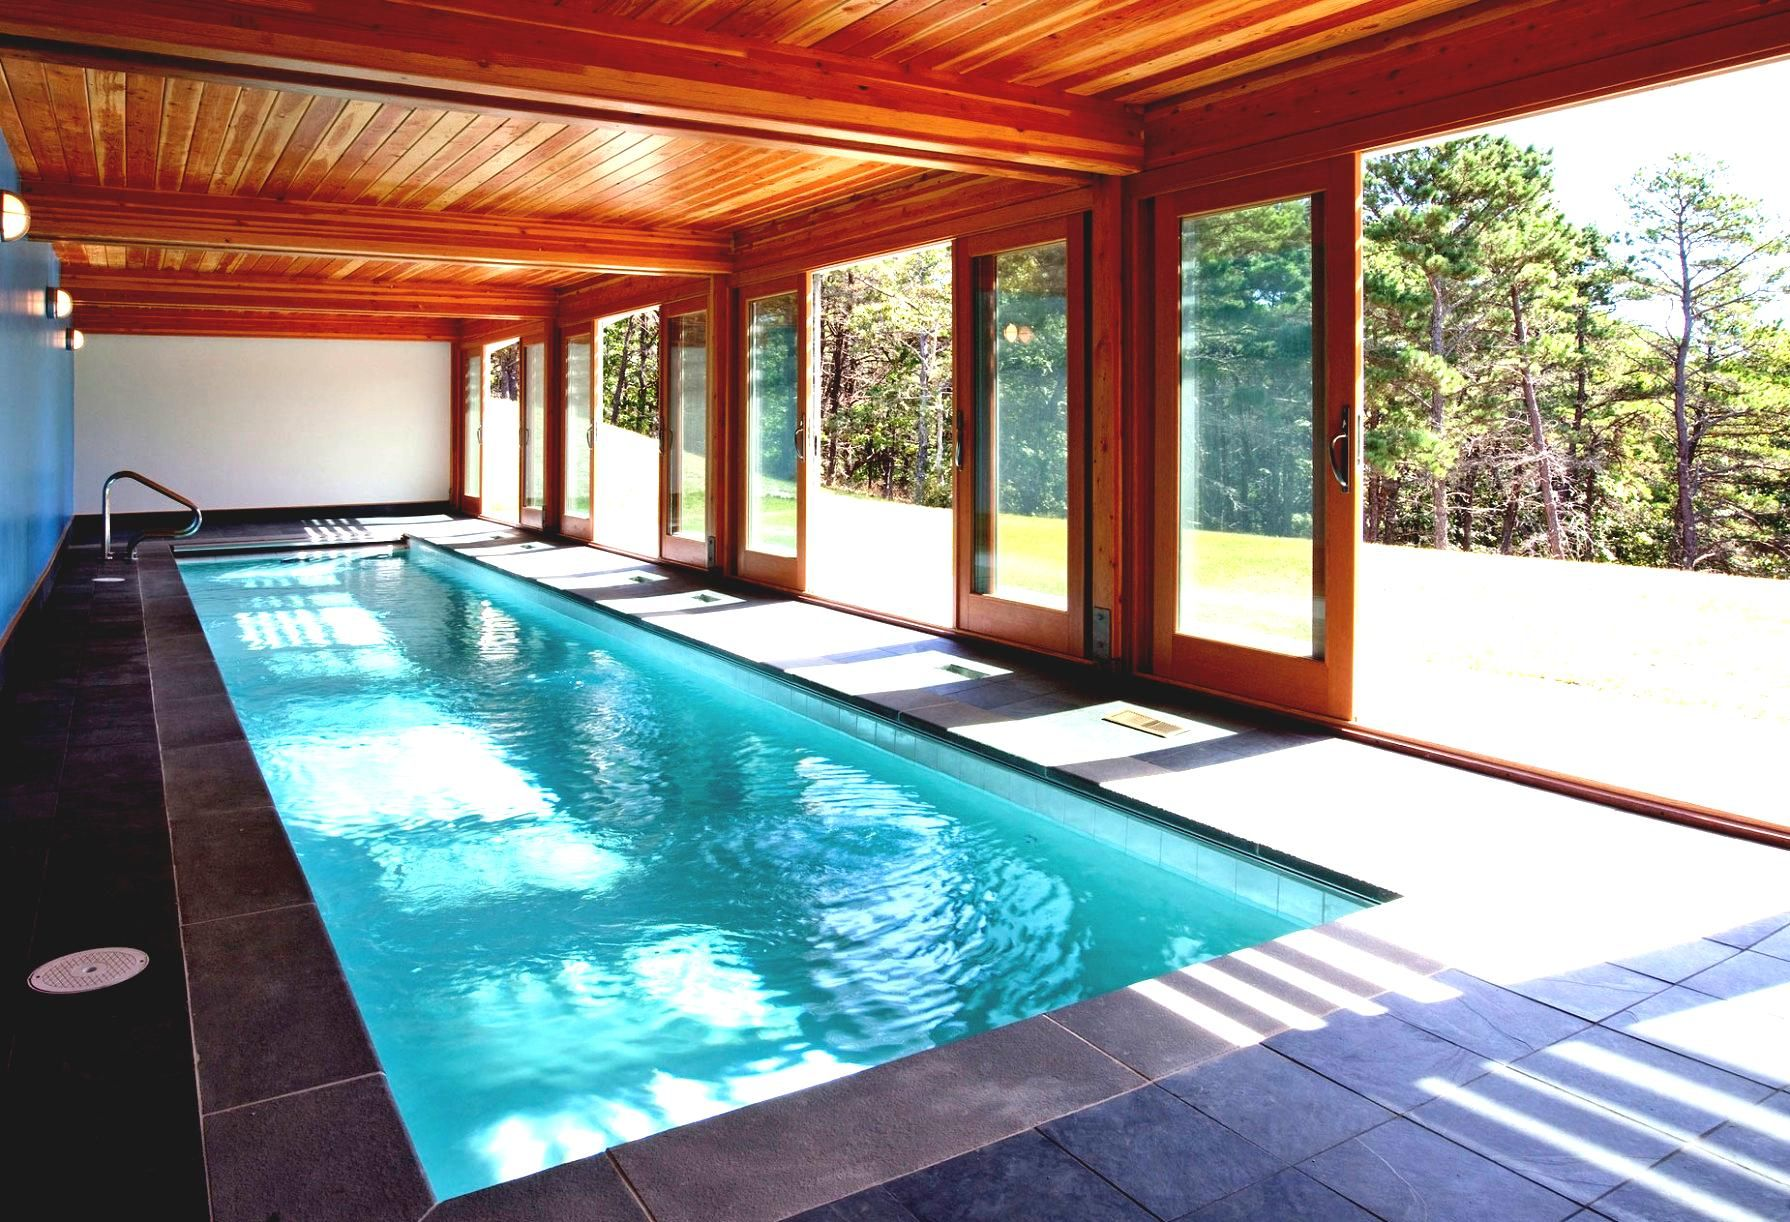 Houses With Indoor Pools indoor pool modern - google search | metal homes | pinterest